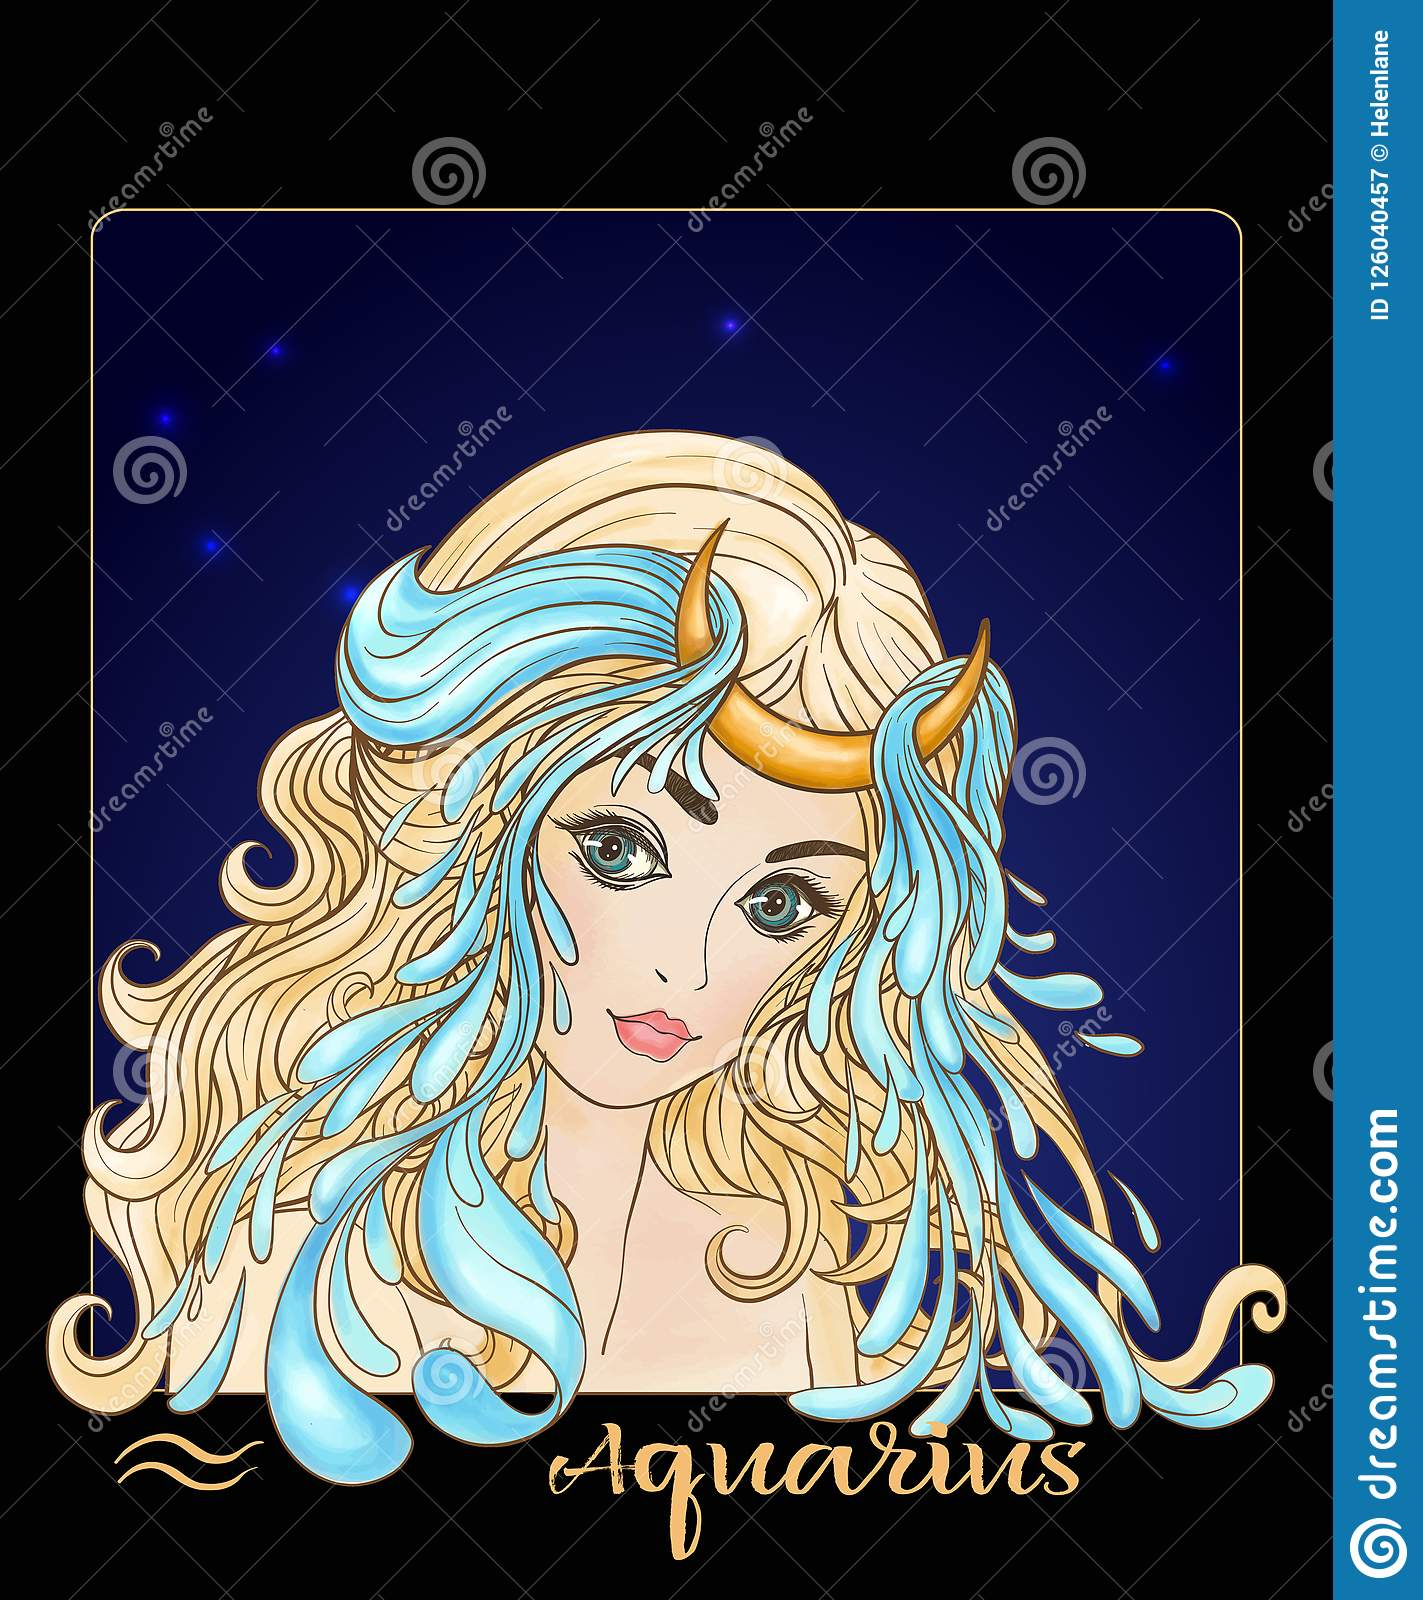 Aquarius Zodiac Sign  A Young Beautiful Girl In The Form Of